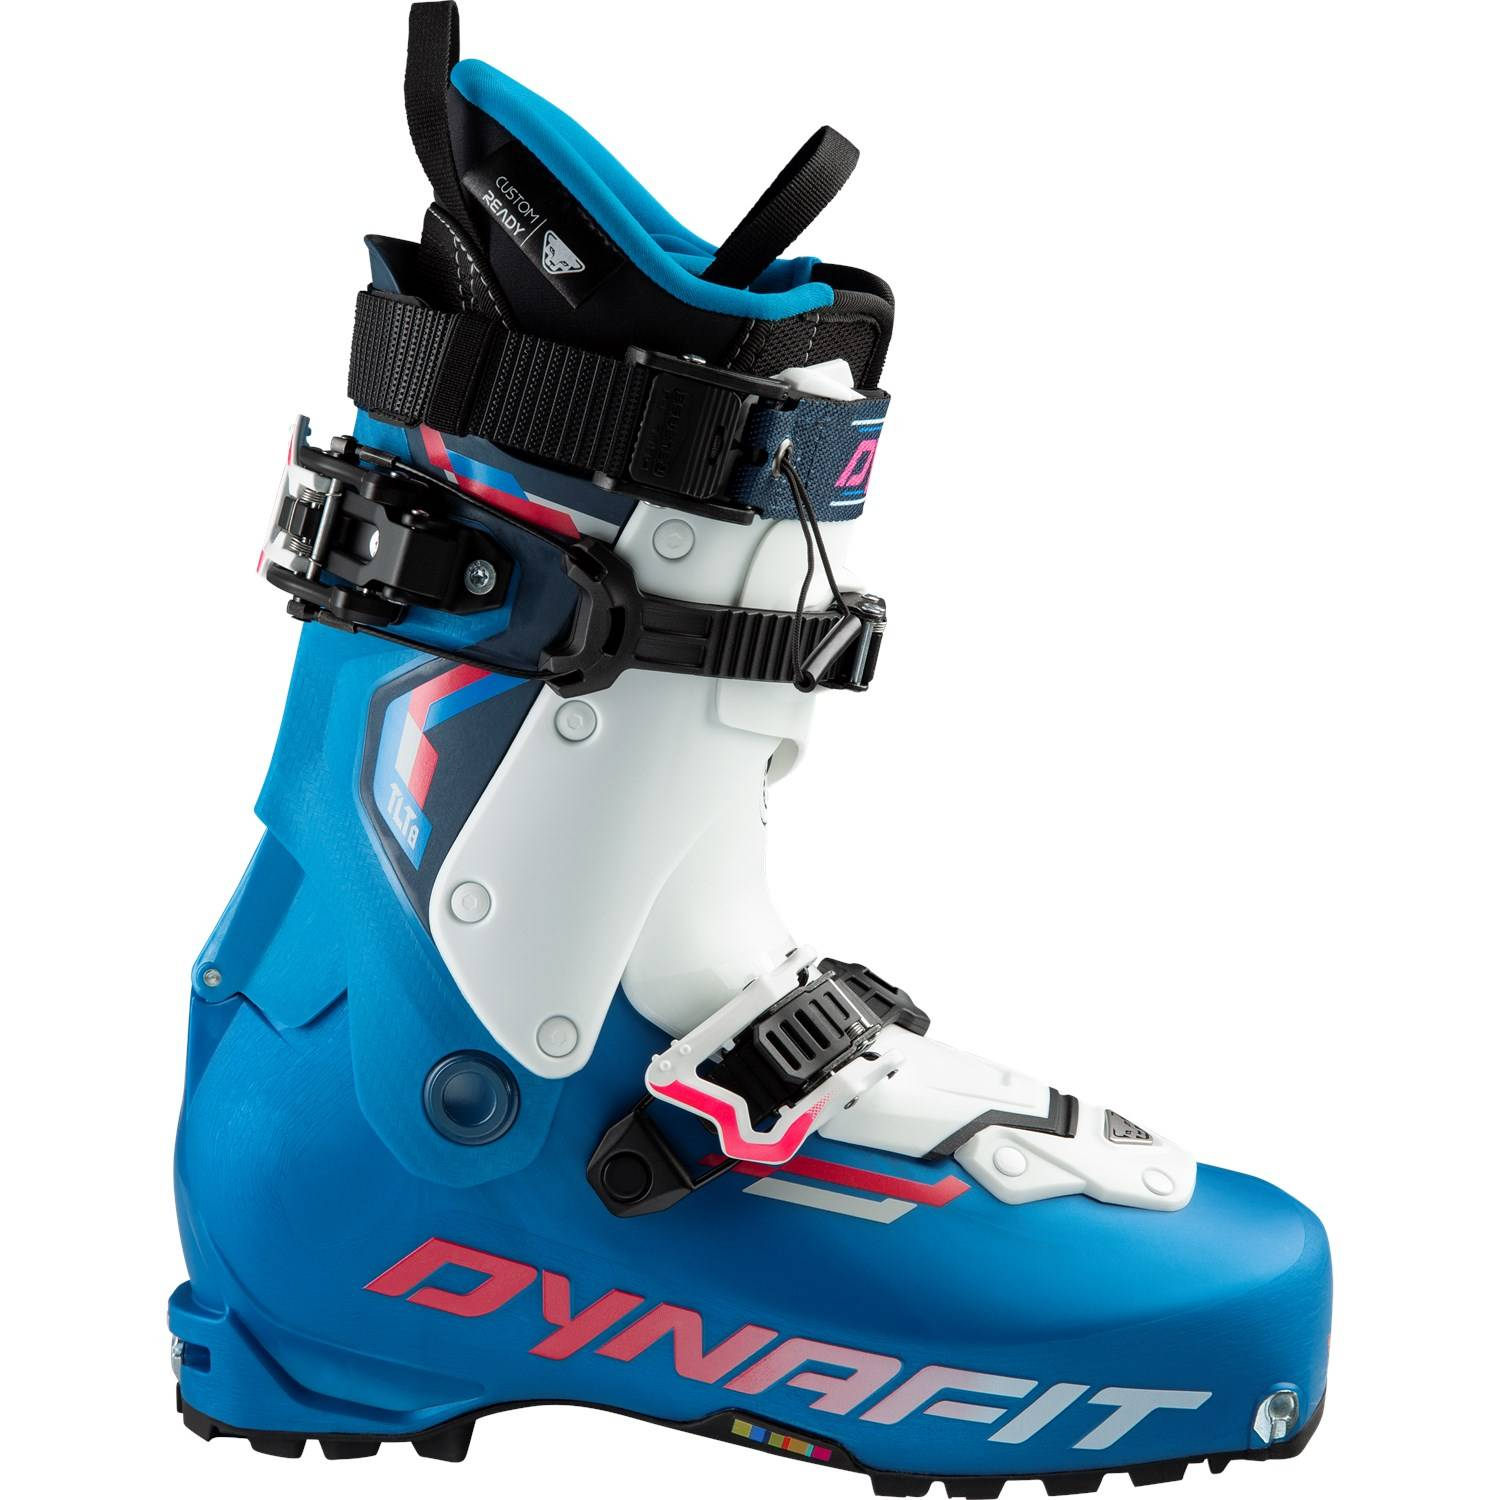 DYNAFIT Chaussures ski TLT 8 Expedition CR Femme